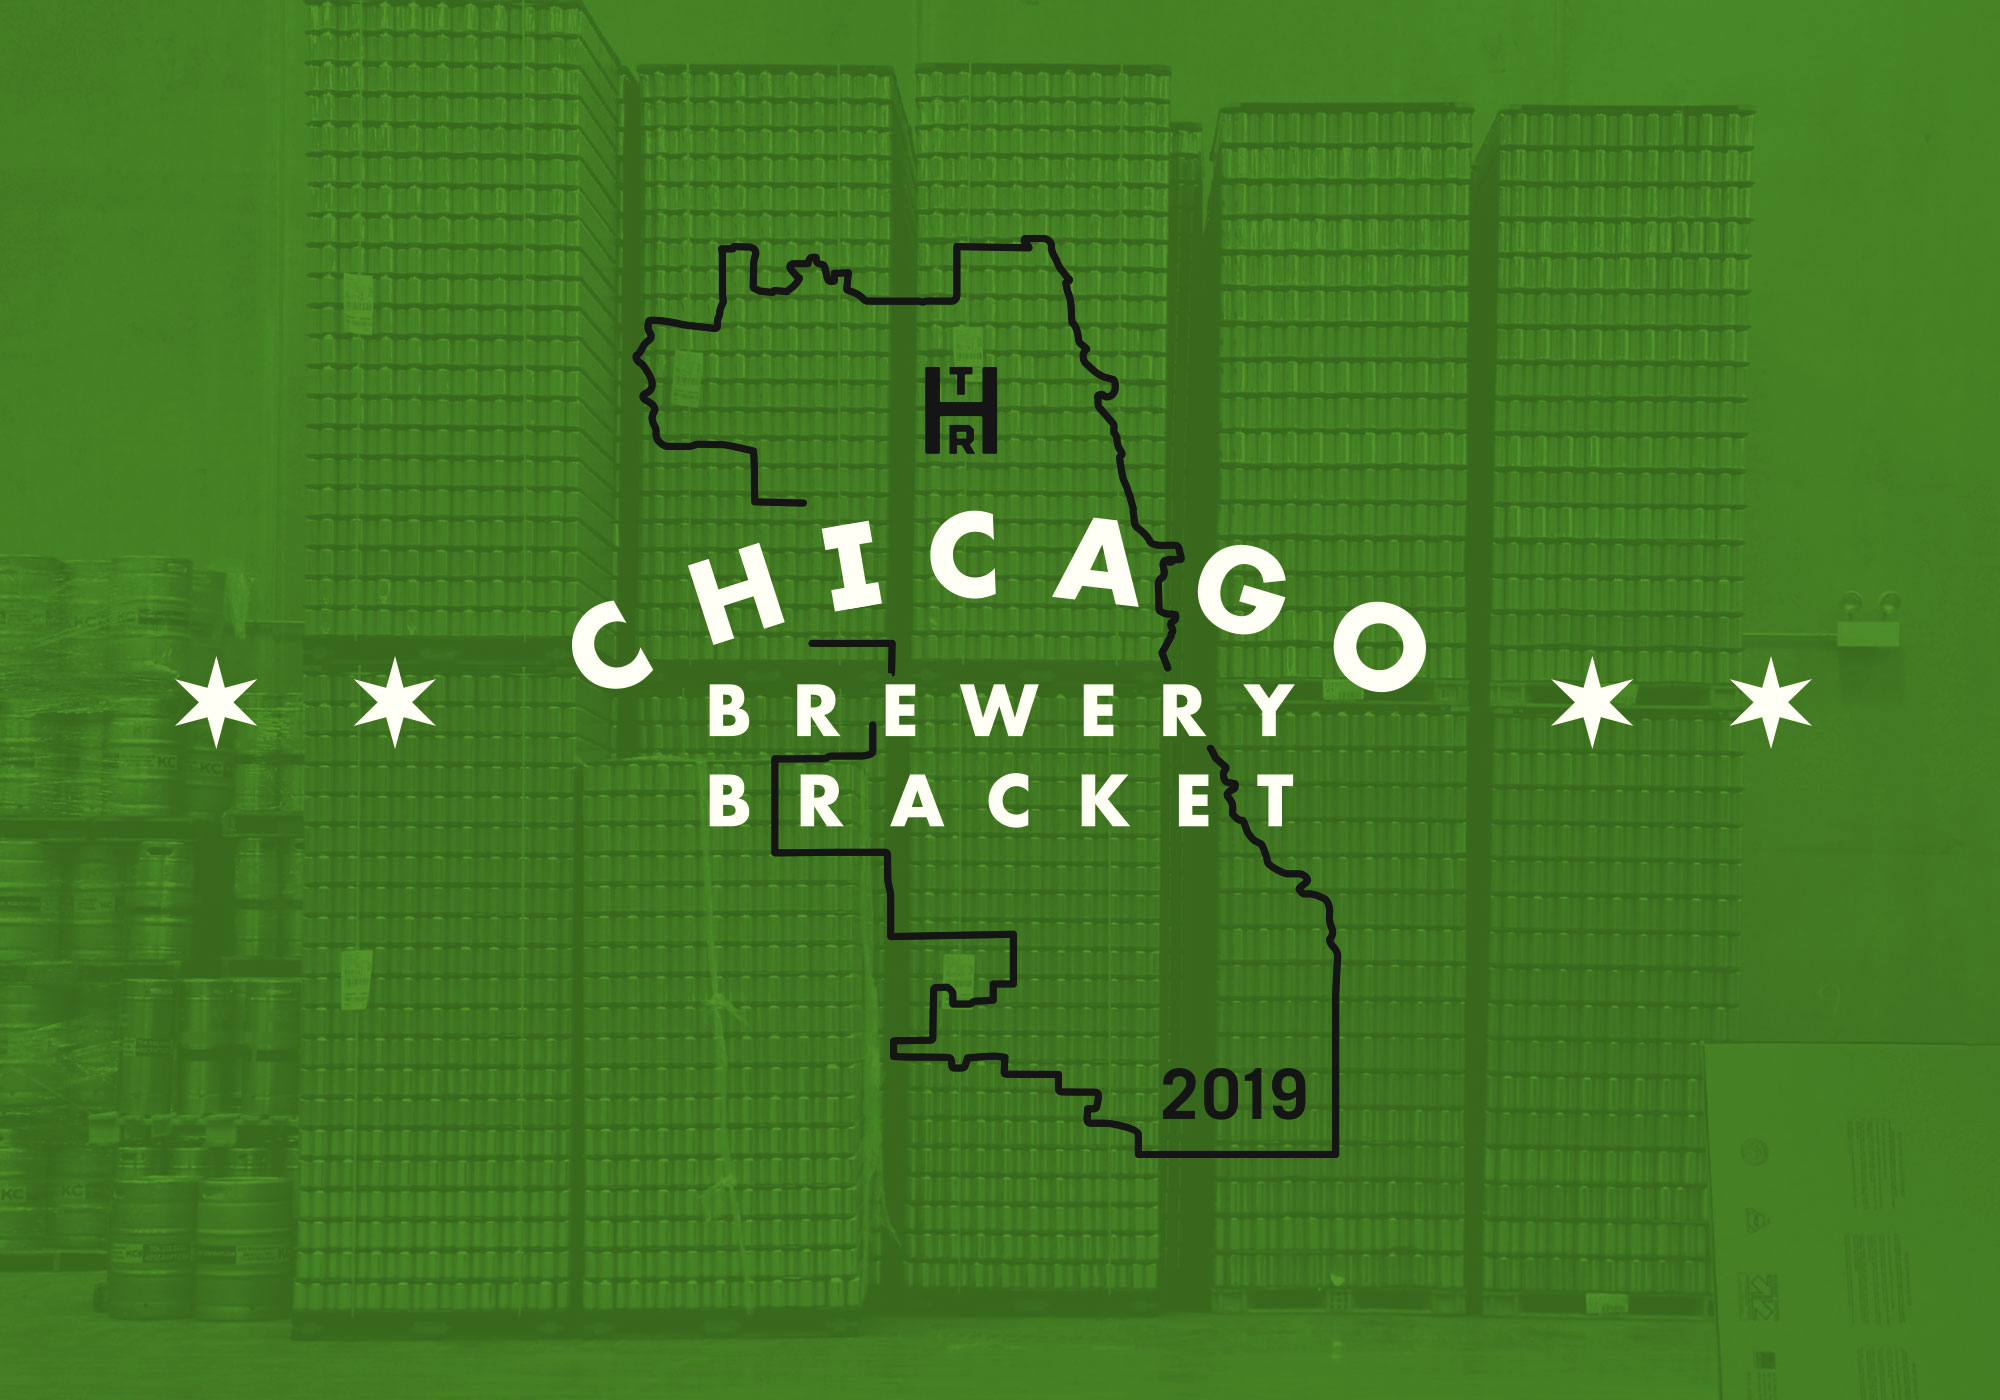 2019 Chicago Brewery Bracket